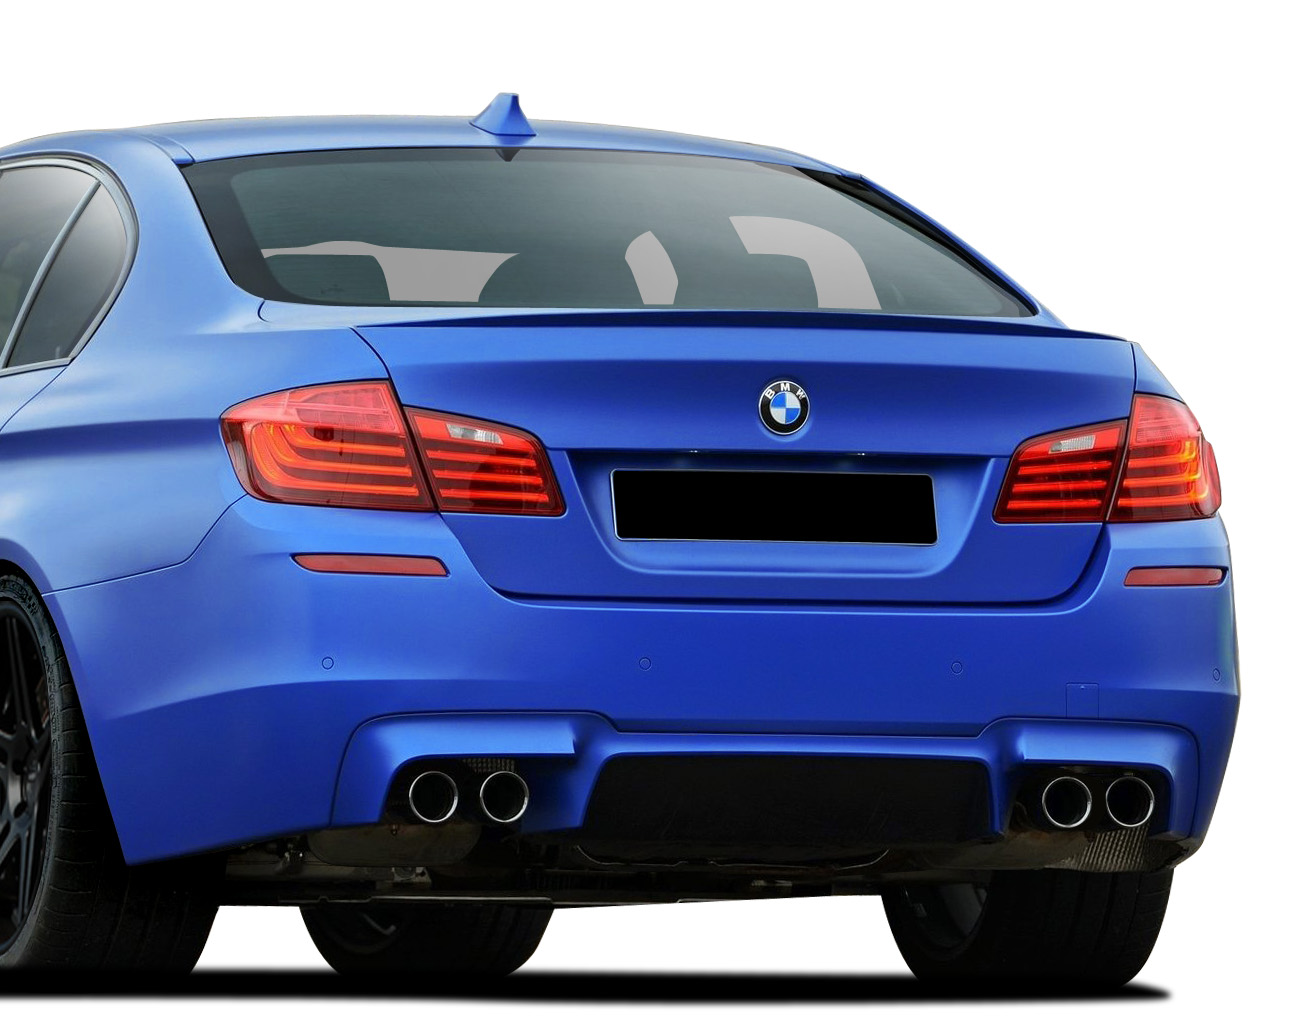 2016 BMW 5 Series 4DR - Polypropylene Body Kit Bodykit - BMW 5 Series F10 Vaero M5 Look Conversion Kit ( with PDC , with Washer , with Camera ) - 6 Pi